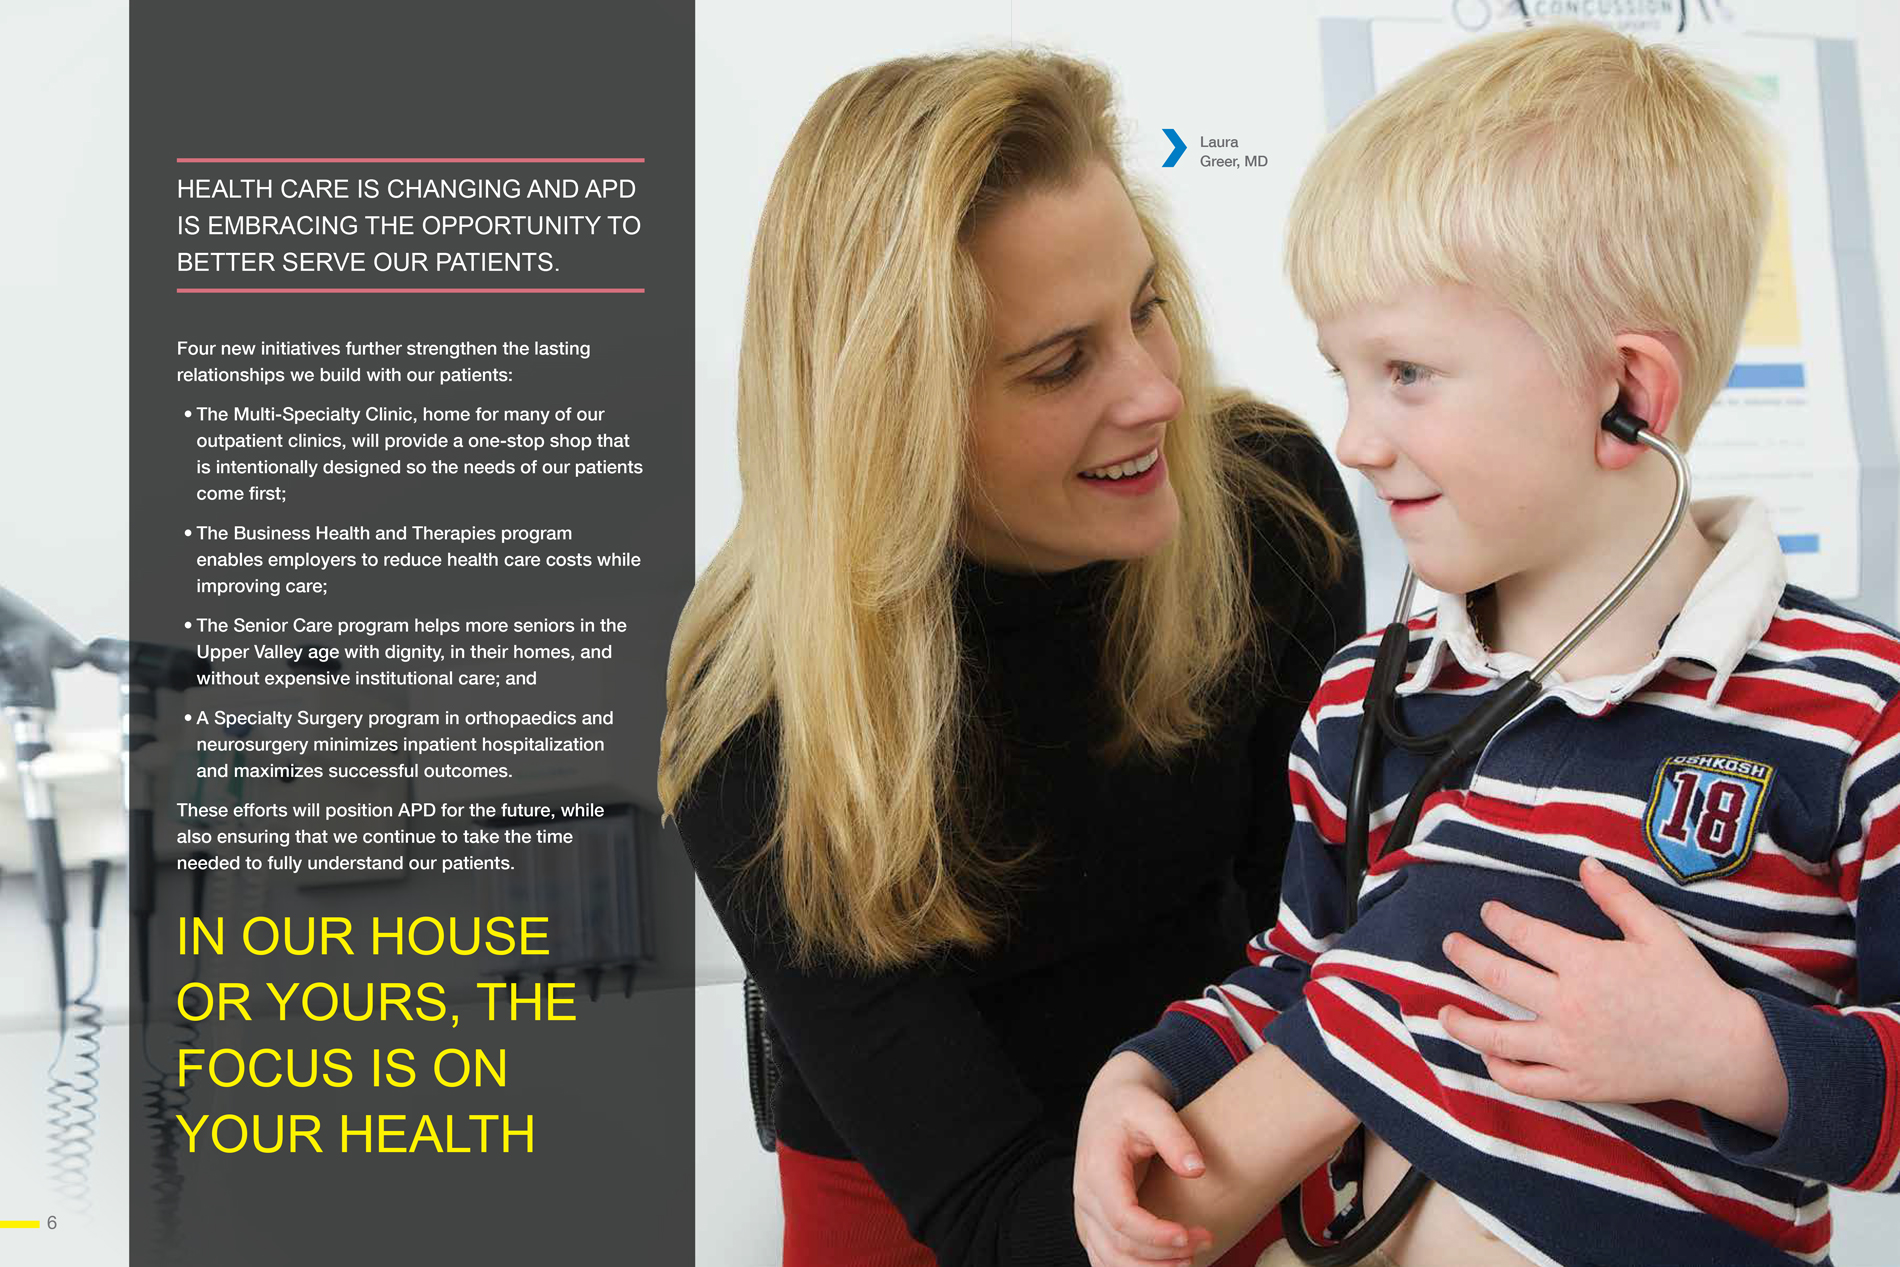 spread APD prospectus brochure showing Dr Greer with a young boy patient